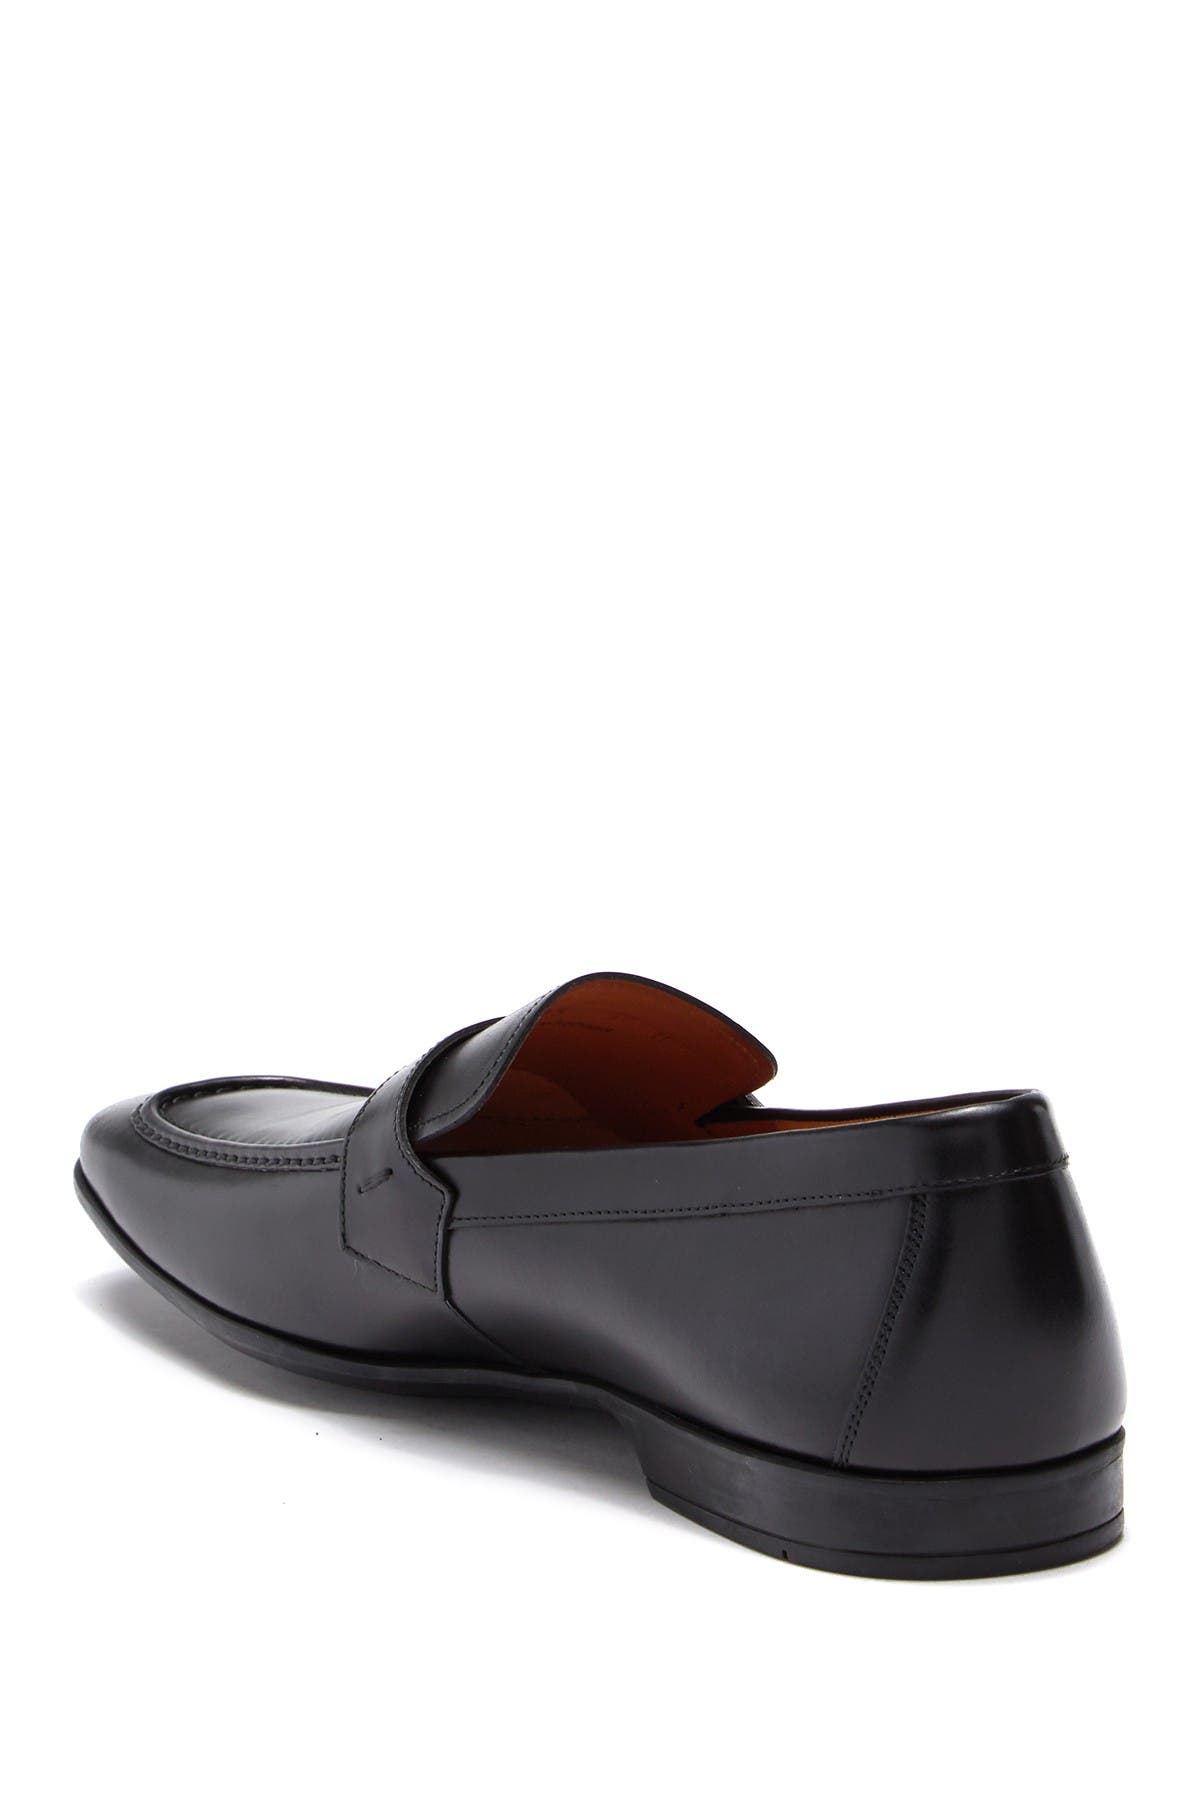 Image of Magnanni Tonic Leather Buckle Loafer